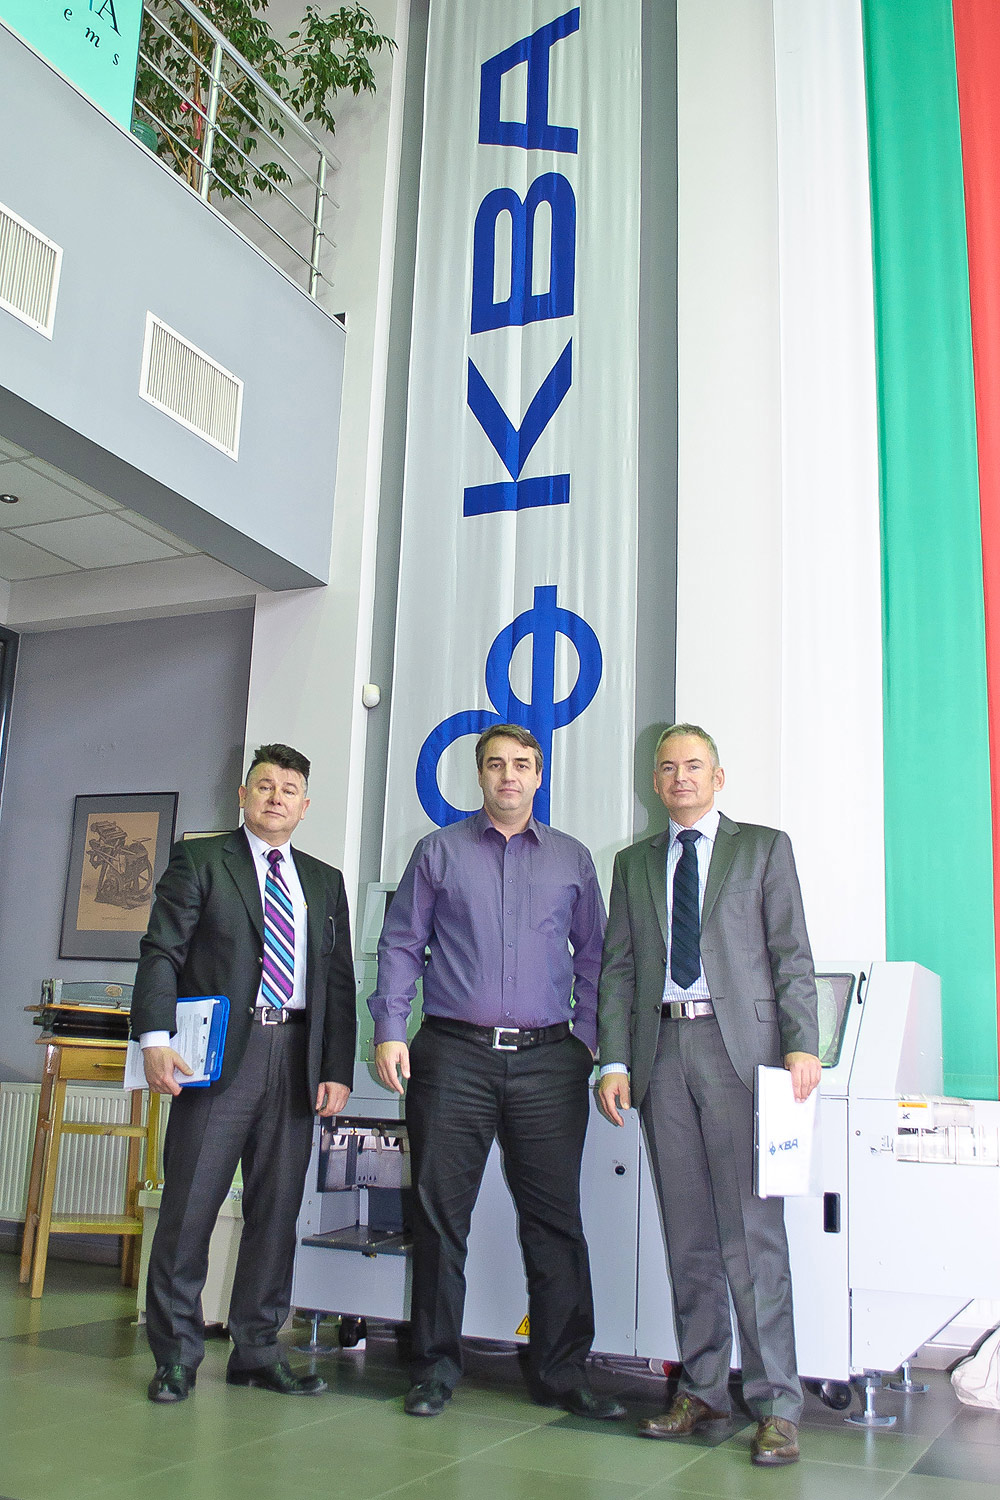 Unipack director and co-proprietor Todor Chakov (centre), pictured here with Simeon Dominov (l) of KBA sales agency Dominov Konsumativ and KBA sales director Sven Strzelczyk, signed the contract for a high-end Rapida 106 dual-coater press in January